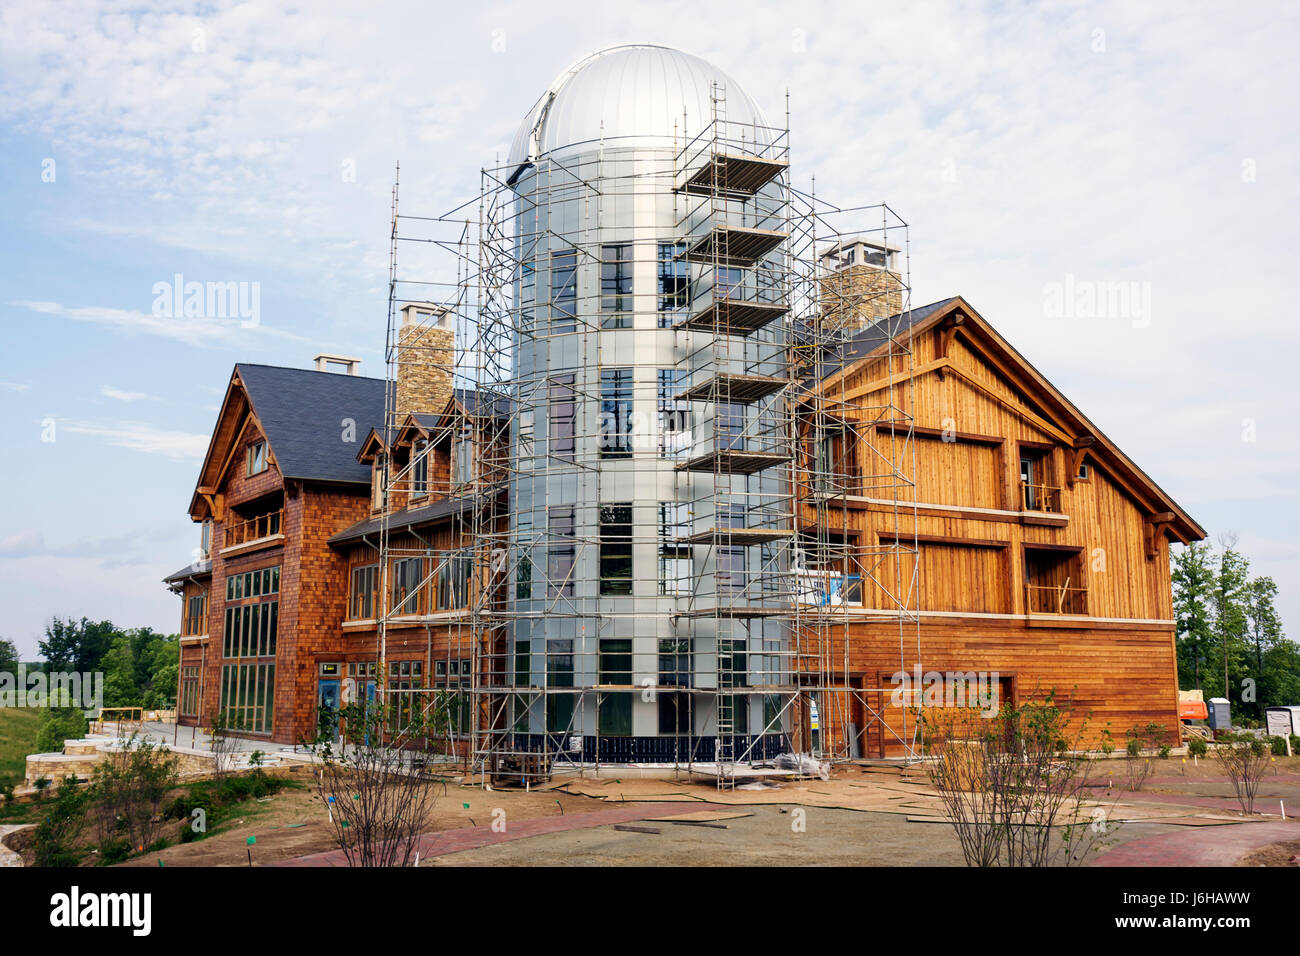 Virginia Meadows of Dan Primland luxury resort lodge golf clubhouse astronomical observatory under construction - Stock Image